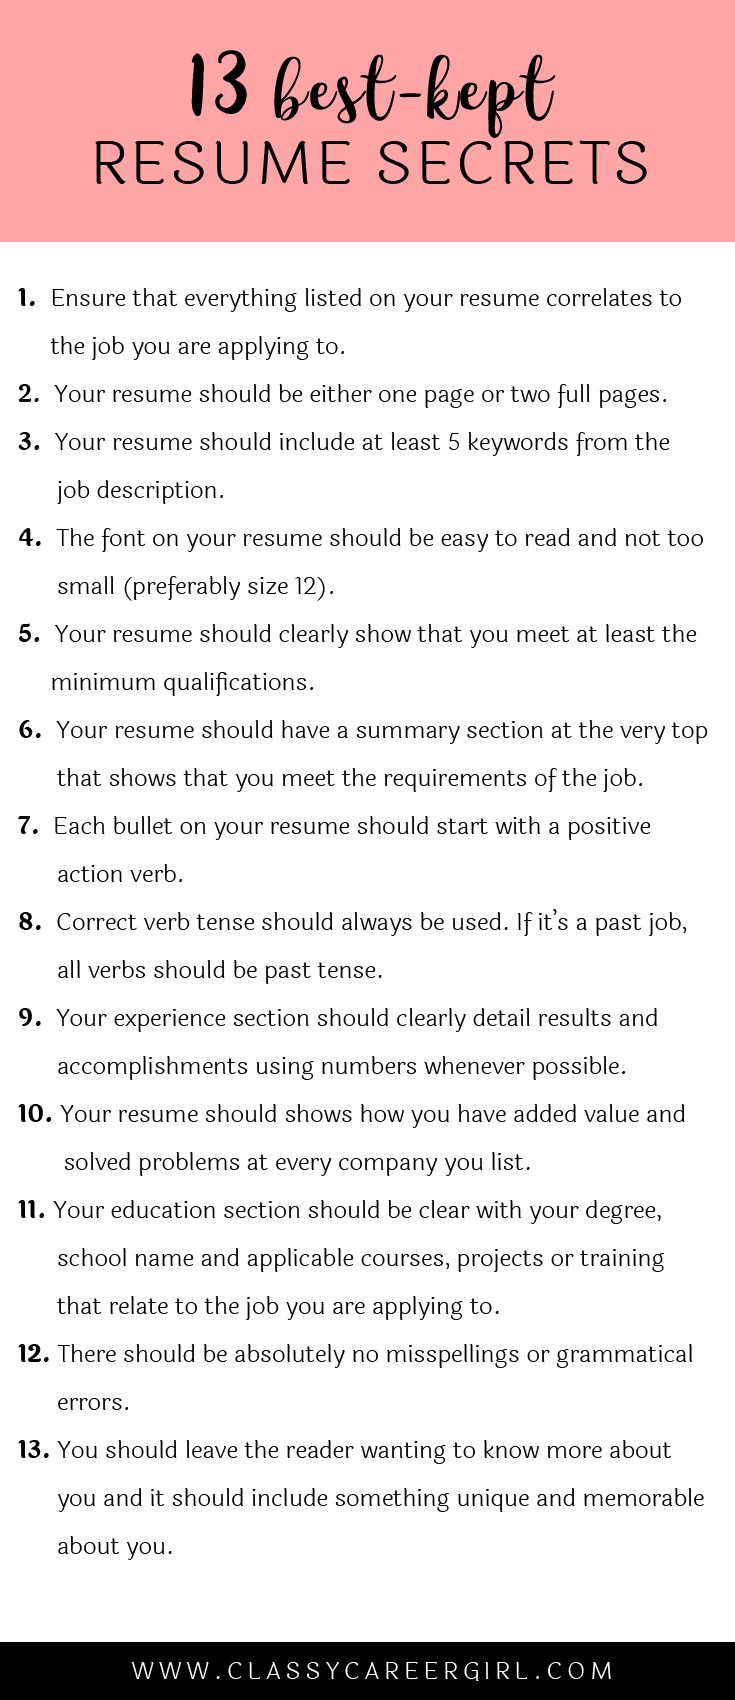 Picnictoimpeachus  Unusual  Ideas About Resume On Pinterest  Cv Format Resume Cv And  With Extraordinary Some Hiring Managers Will Toss Your Resume Out If You Dont Know These  With Amazing Designer Resume Templates Also Outstanding Resumes In Addition Resume Stay At Home Mom And How To Make Your First Resume As Well As Free Basic Resume Templates Download Additionally Making A Resume In Word From Pinterestcom With Picnictoimpeachus  Extraordinary  Ideas About Resume On Pinterest  Cv Format Resume Cv And  With Amazing Some Hiring Managers Will Toss Your Resume Out If You Dont Know These  And Unusual Designer Resume Templates Also Outstanding Resumes In Addition Resume Stay At Home Mom From Pinterestcom